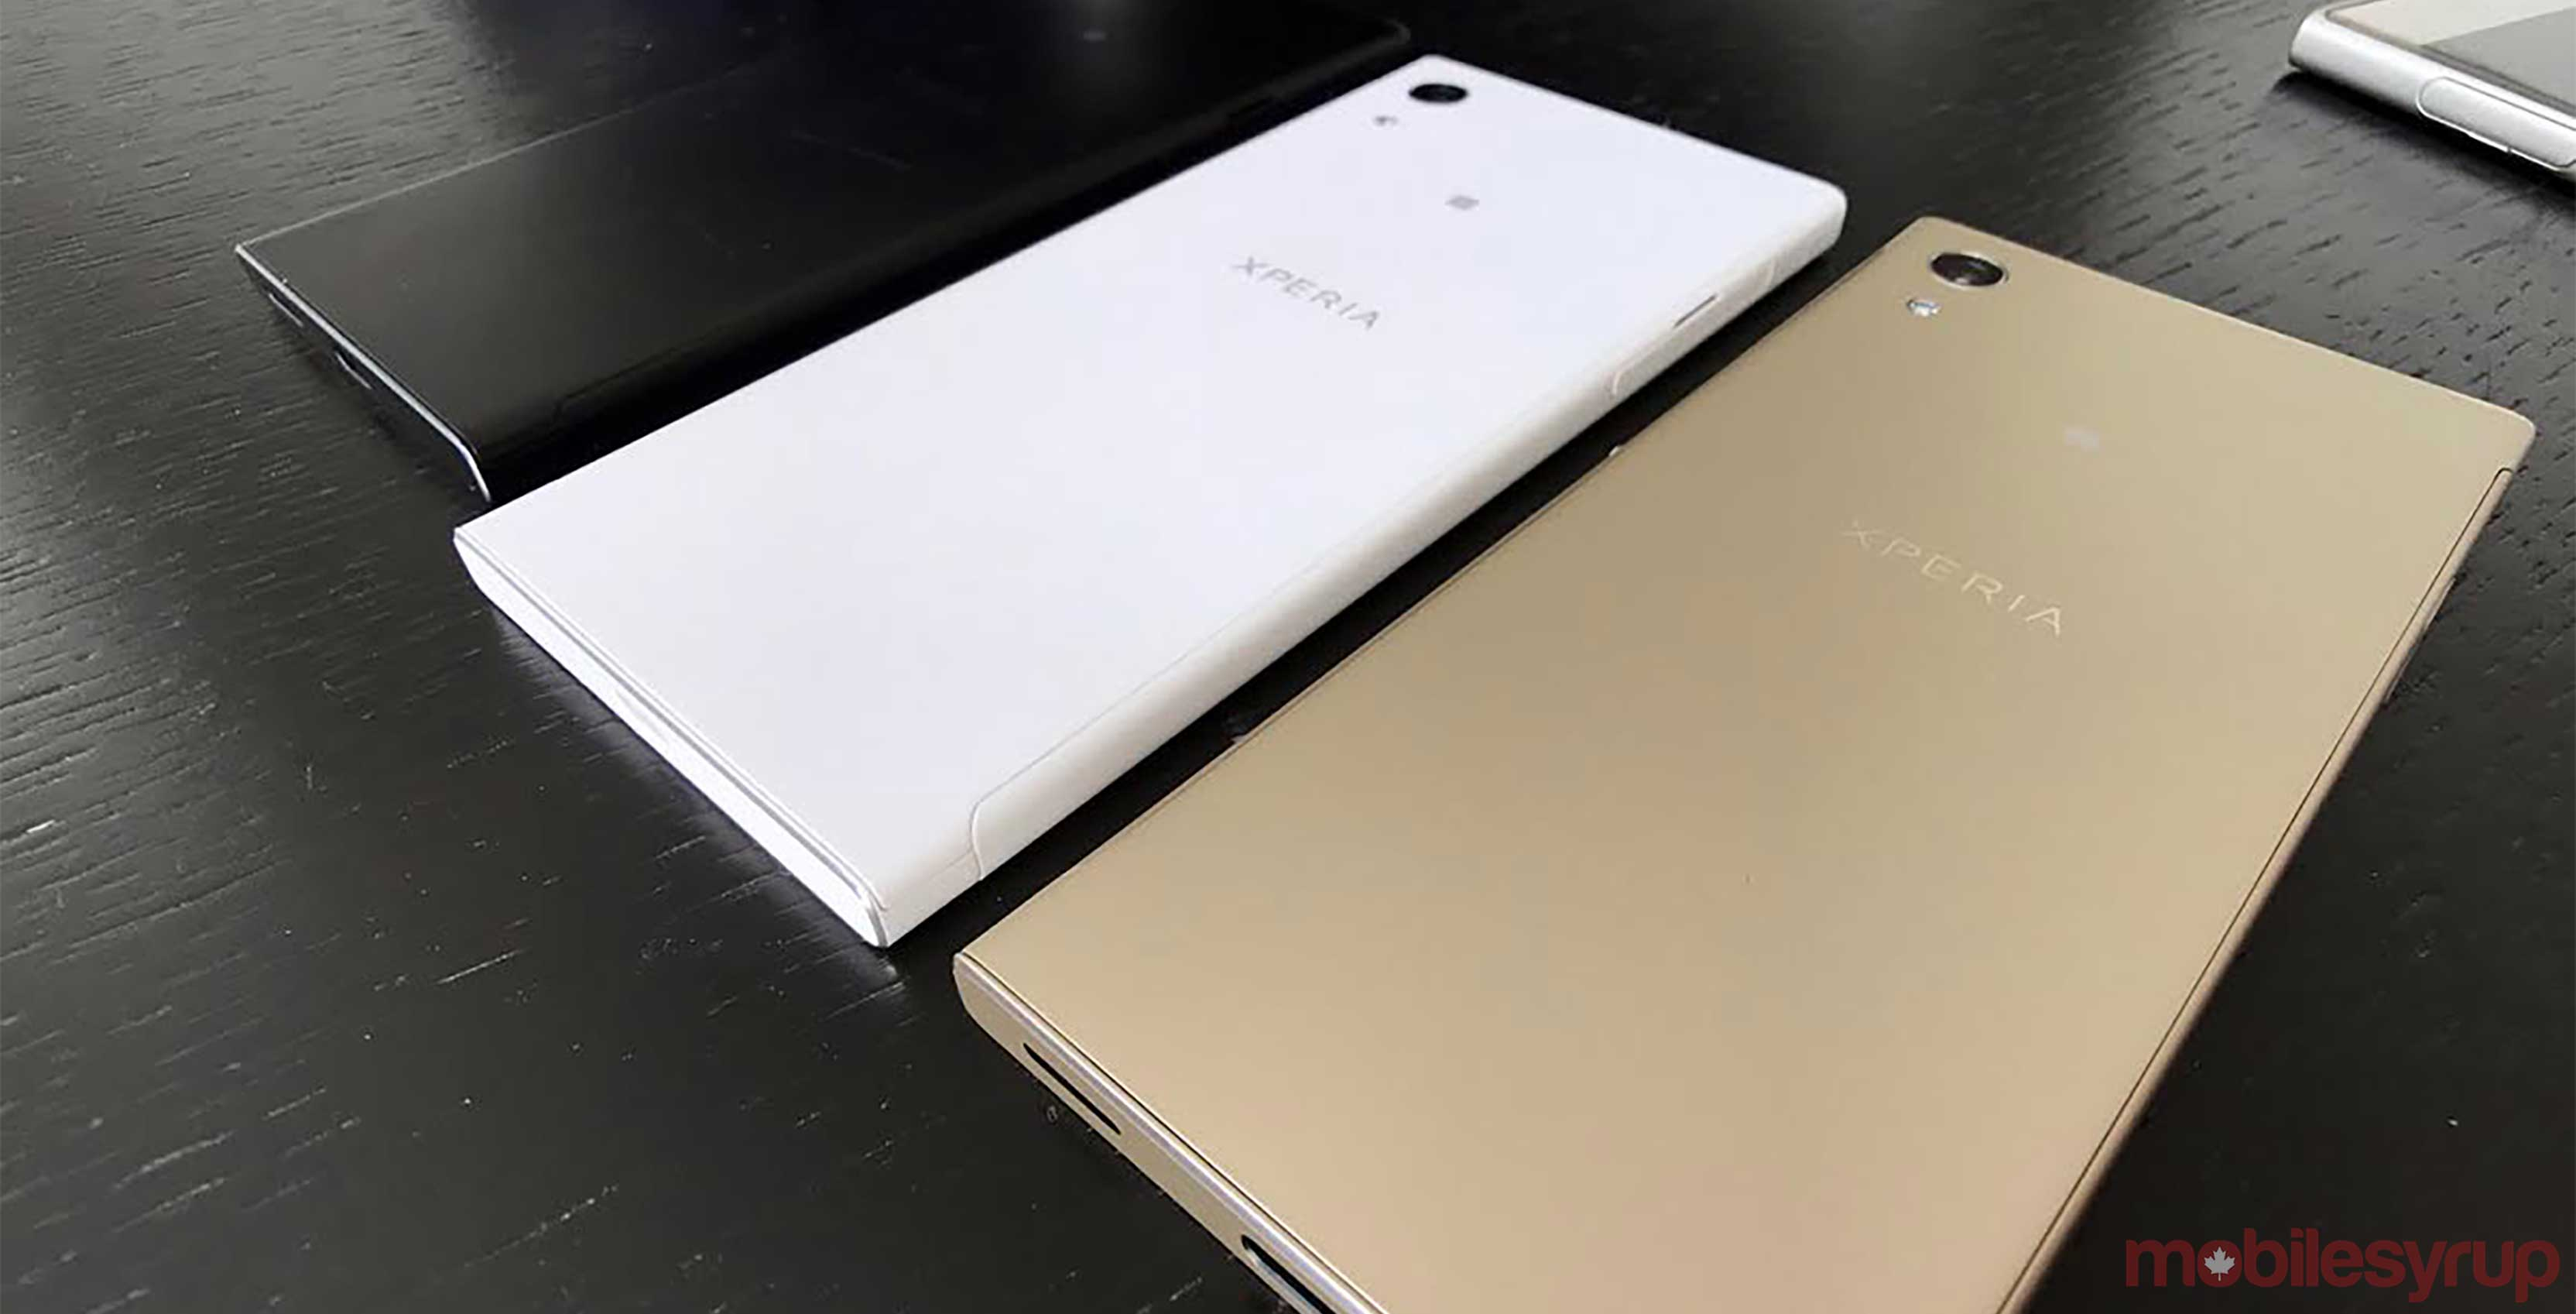 Xperia XA1 and XA1 Ultra